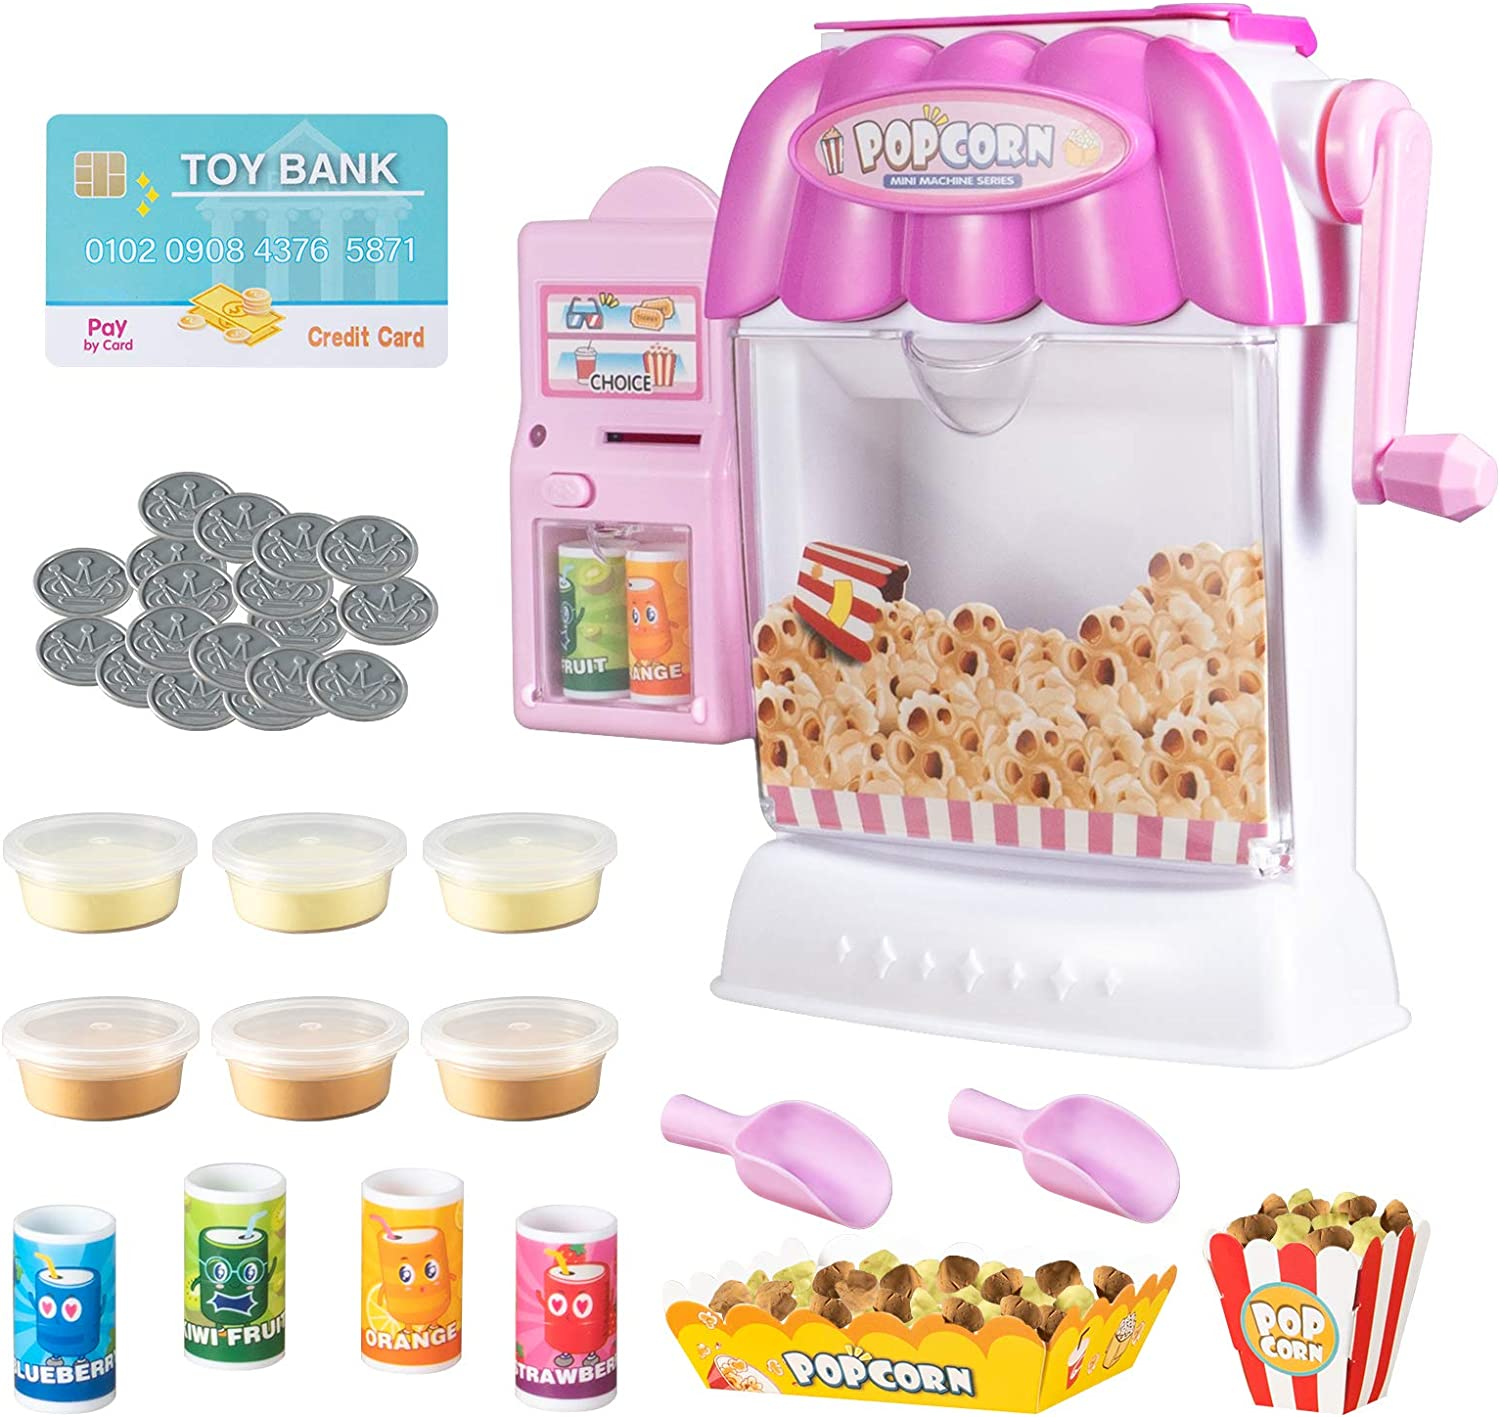 Ainek Toy Popcorn Maker - Hand Cranked Popcorn & Mini Vending Machine Toy, Creative Birthday Gift Toy for Kid Boys and Girls of 3 4 5 6 7 Year Old